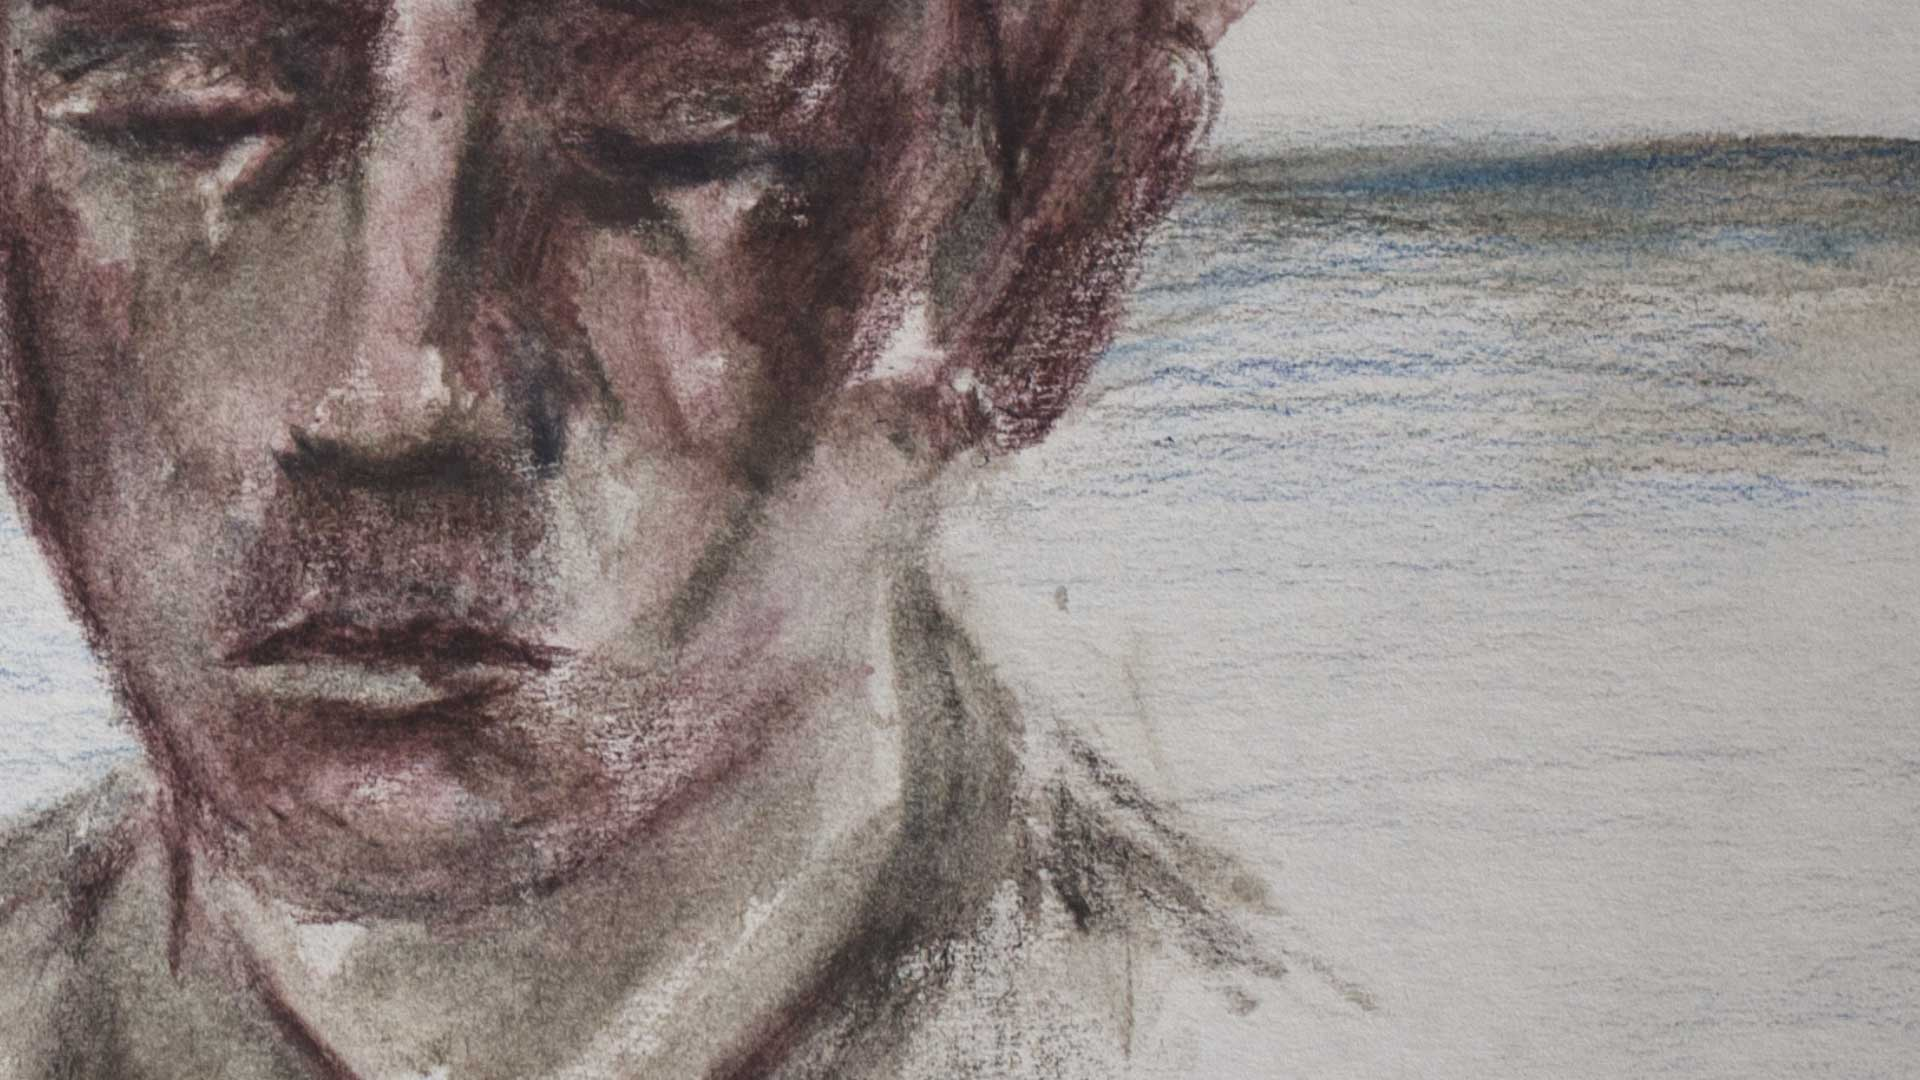 I. Pucci, 50 imaginary portraits of a young man in one minute of his life, animation, 2013